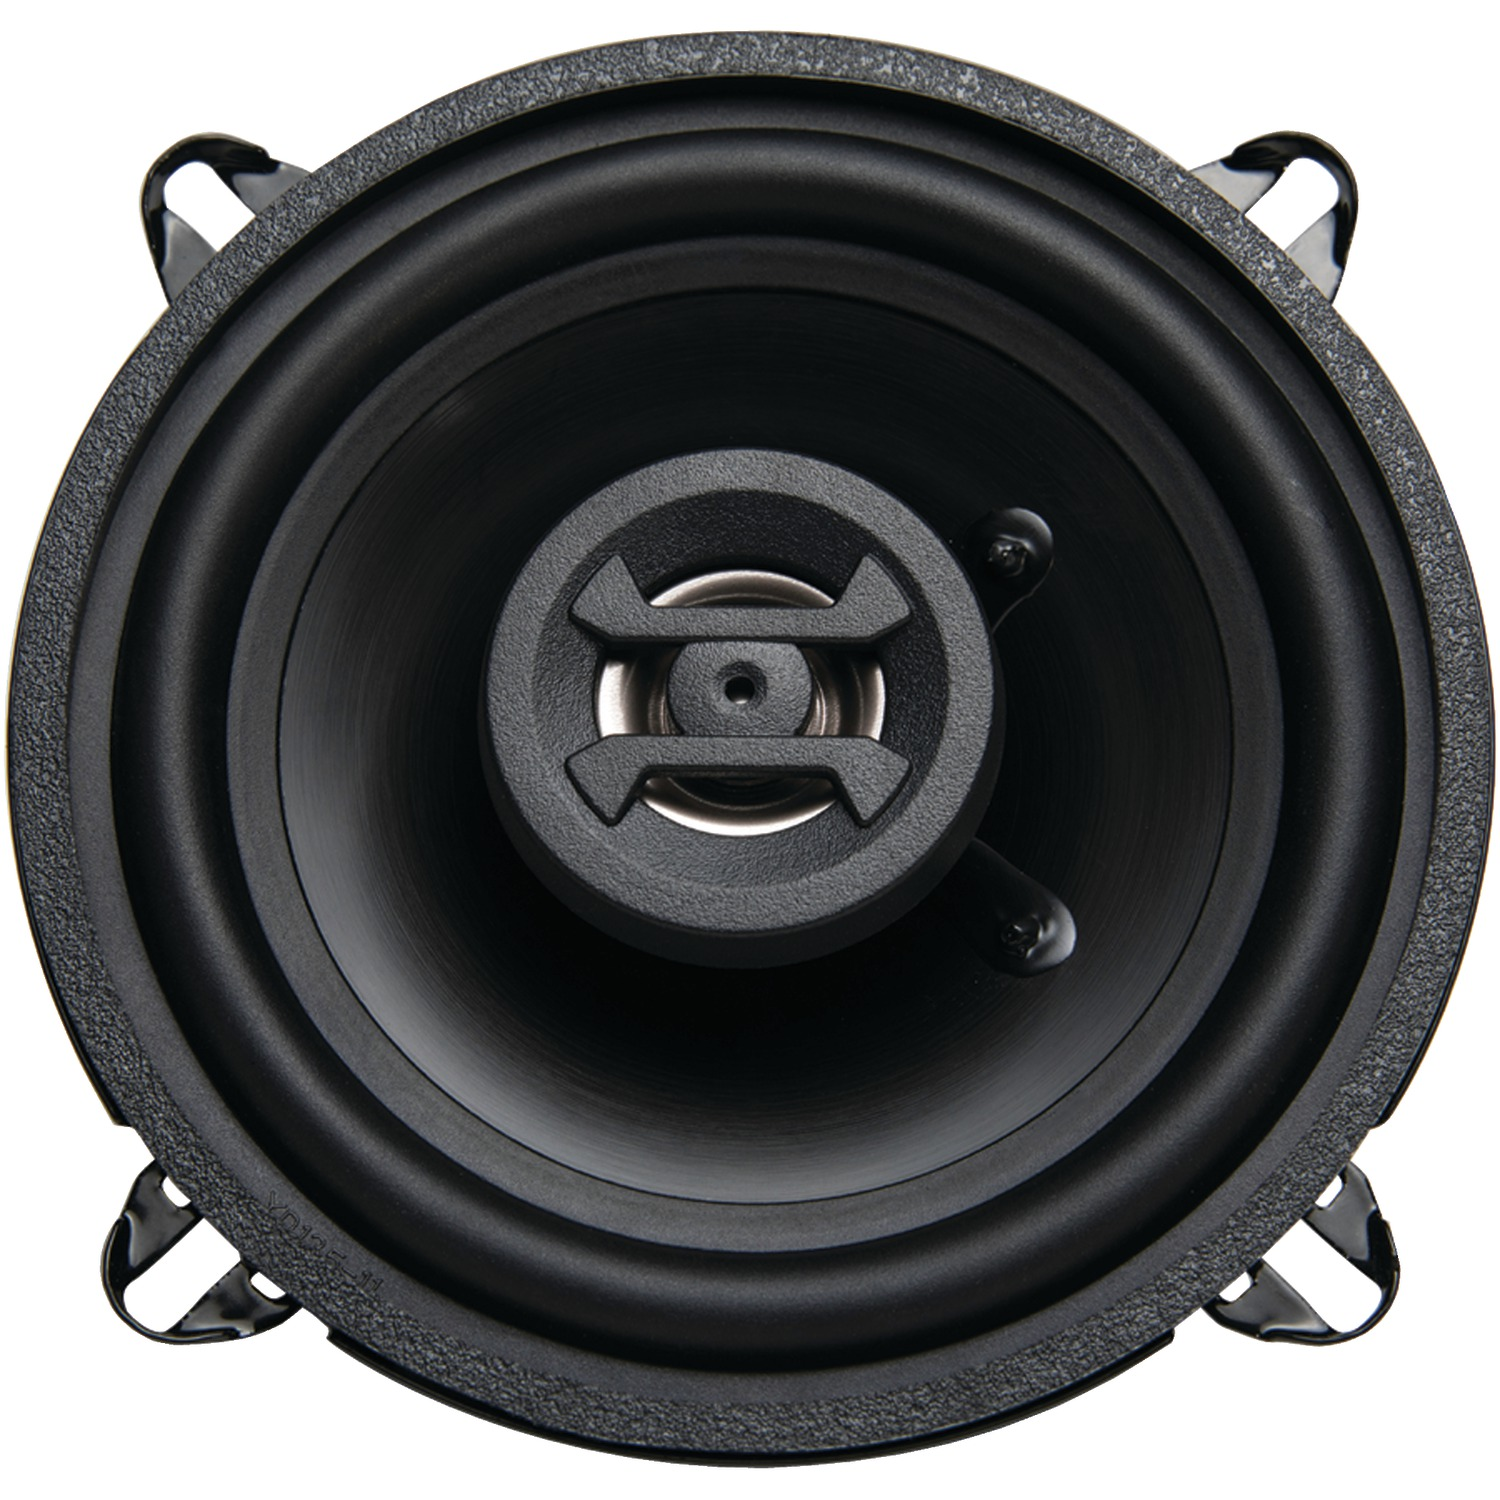 hifonics zs525cx zeus series coaxial 4ohm speakers. Black Bedroom Furniture Sets. Home Design Ideas